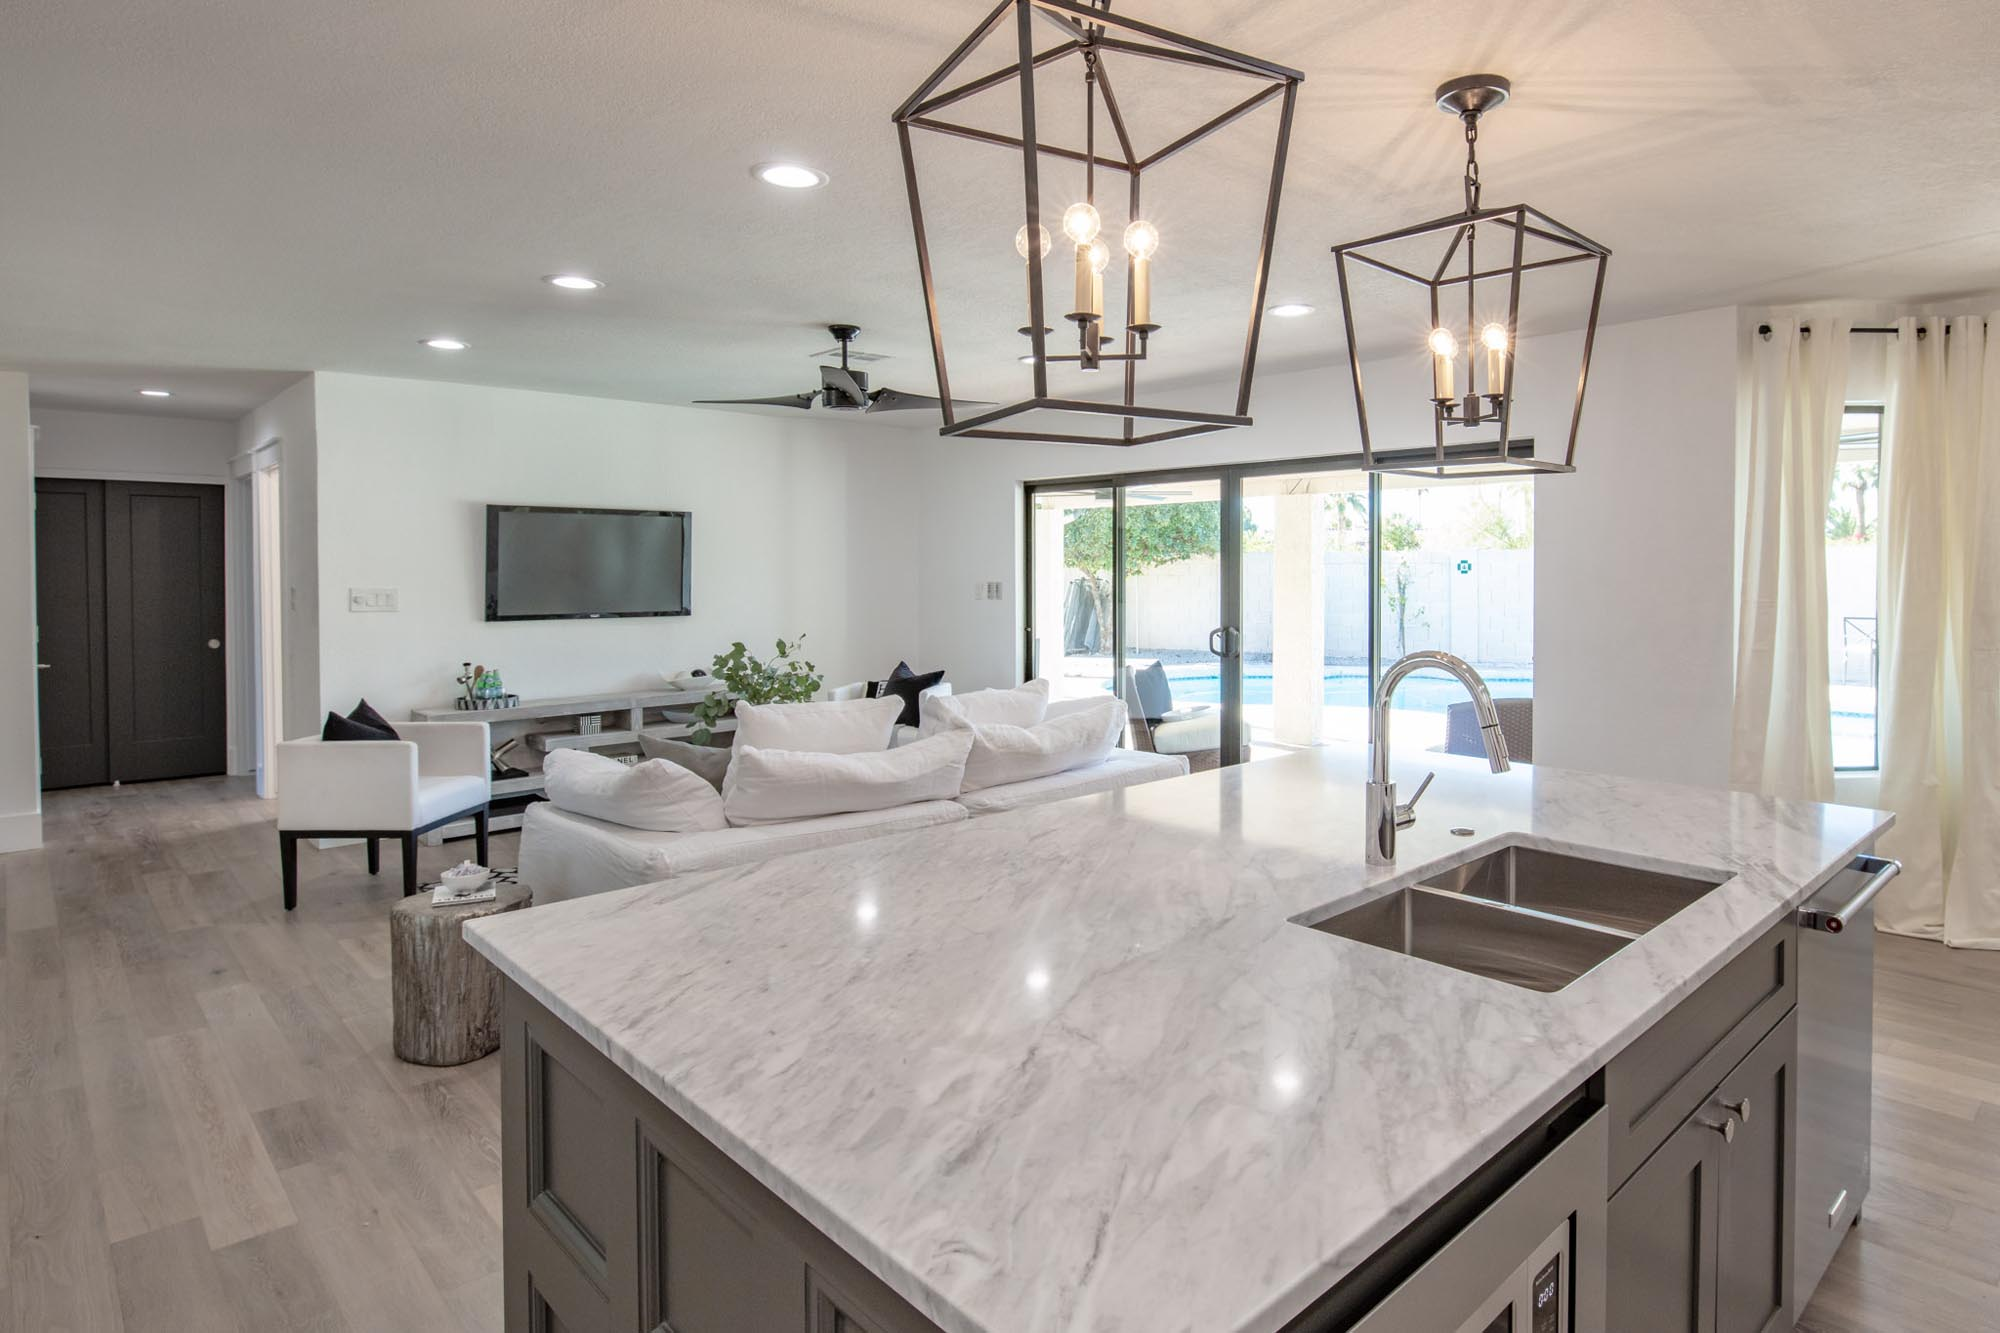 Kitchen area with granite countertop island and stylish hanging lights